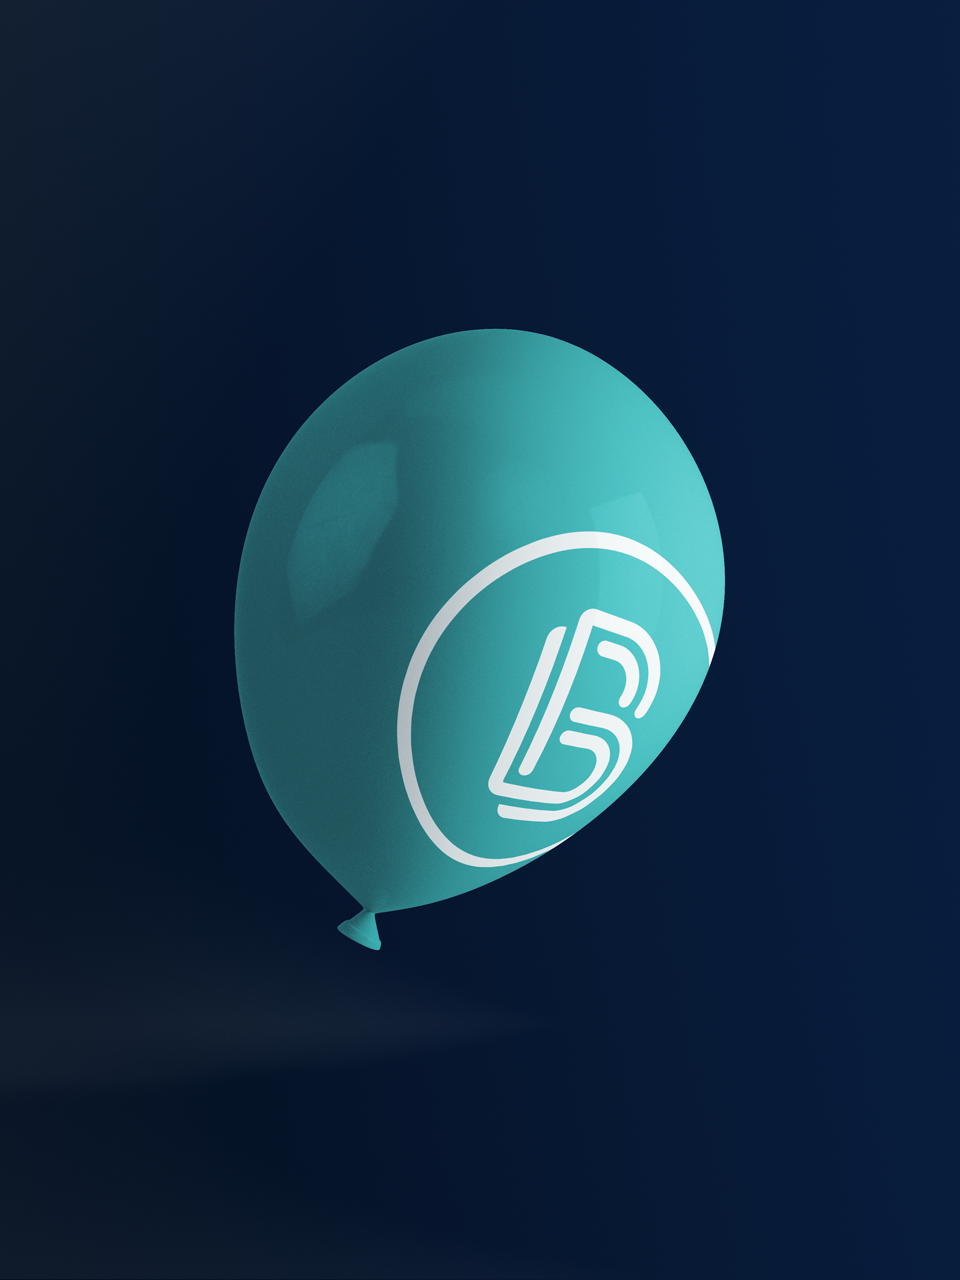 Balloon-BM-2.png